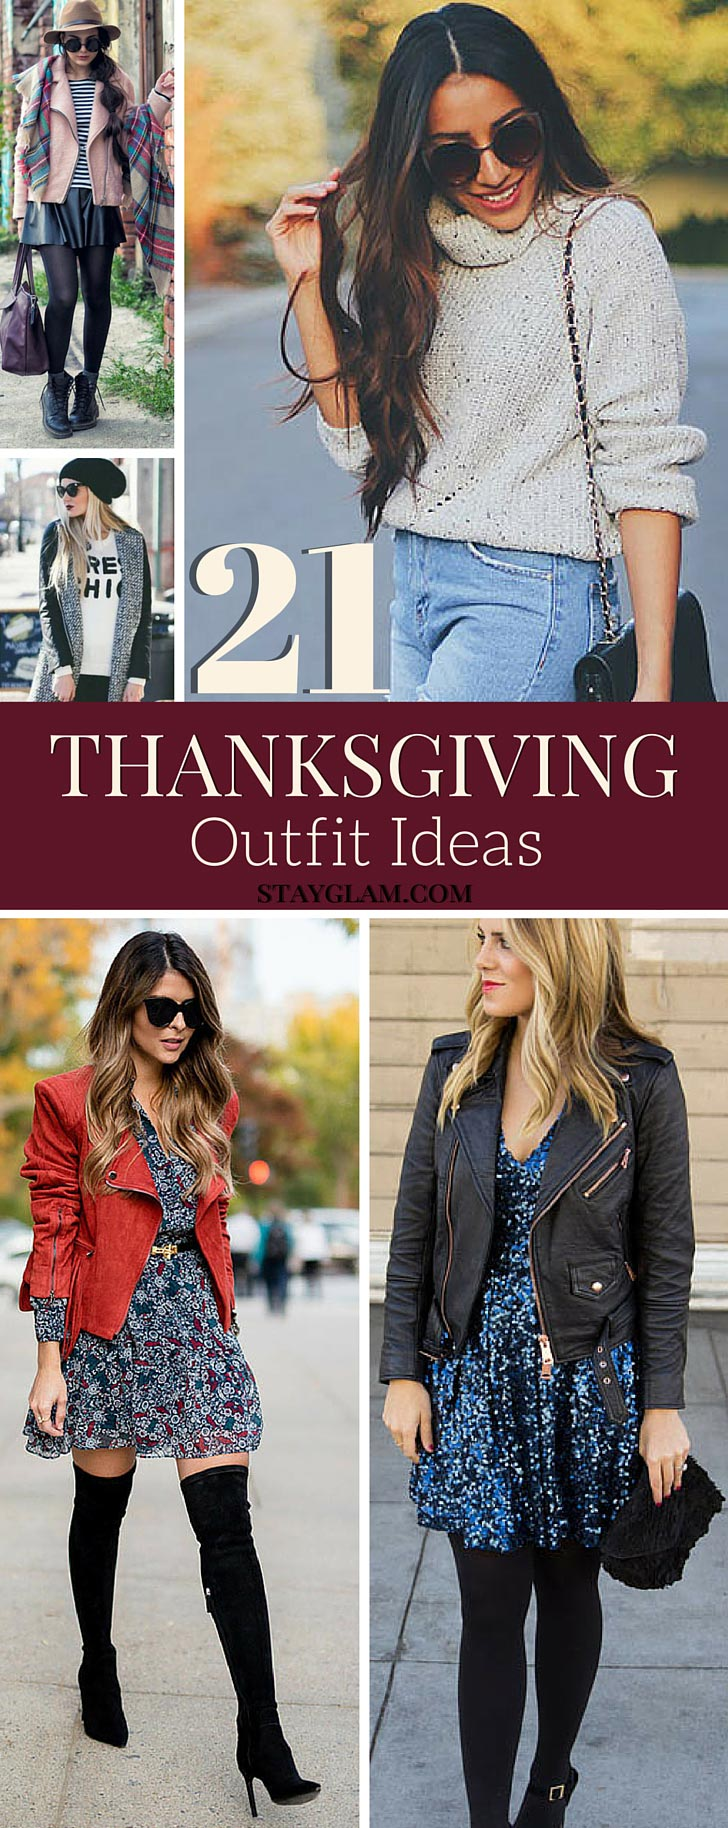 21 comfy  stylish thanksgiving outfit ideas  stayglam